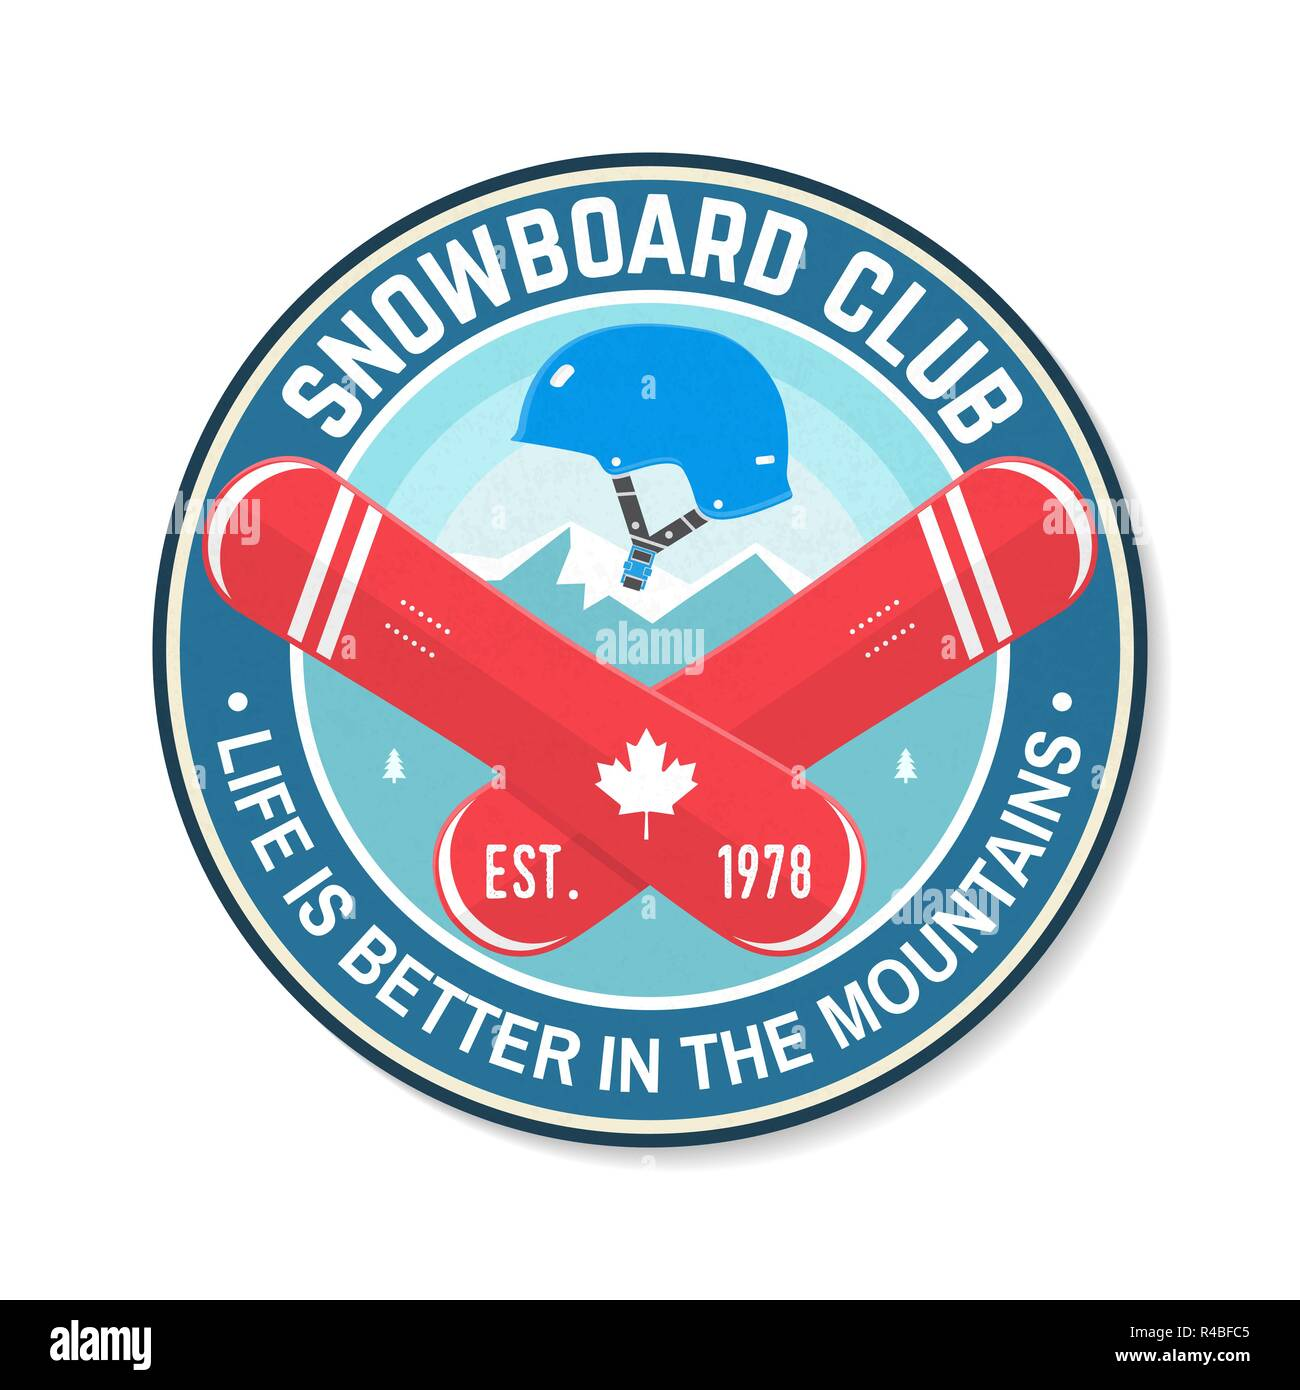 Snowboard Club. Vector illustration. Concept for shirt, patch, print, stamp or tee. Vintage typography design with snowboard and helmet silhouette. Extreme winter sport. - Stock Image